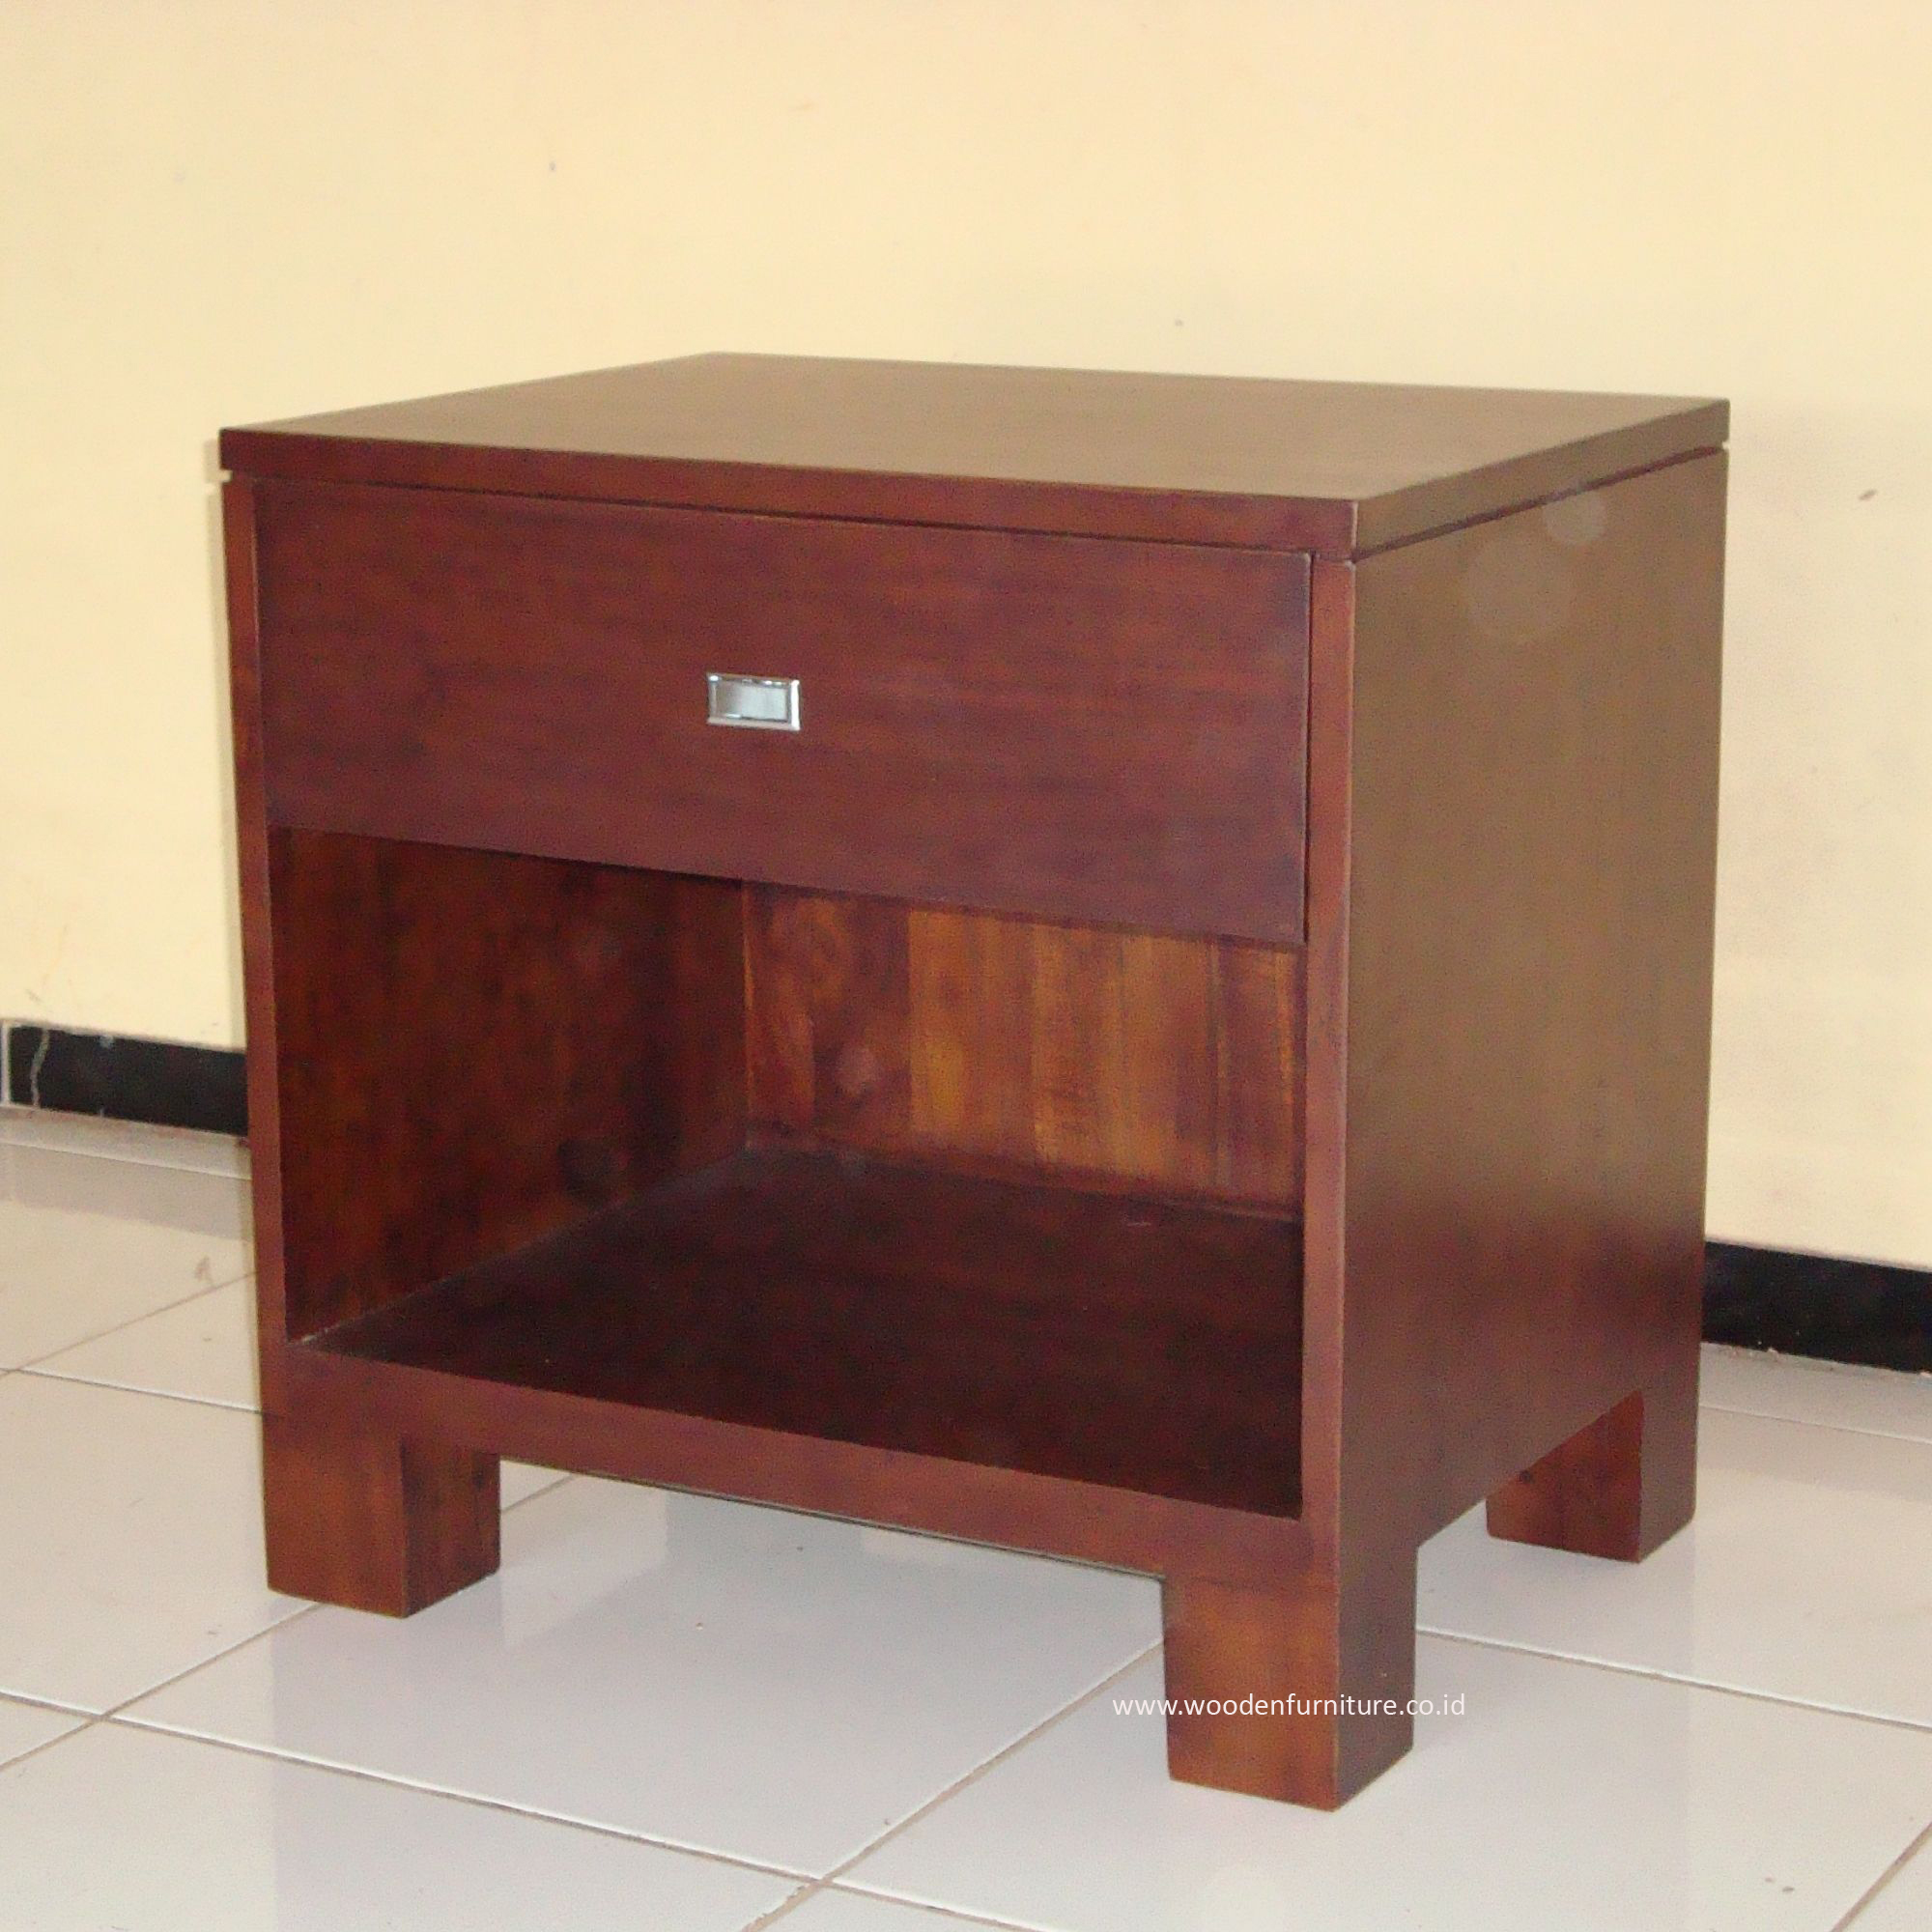 Picture of: Teak Bed Side Solid Wood Night Stand Wooden Lamp Table Minimalist Home Furniture Modern Bed Room Furniture Buy Bed Side Teak Wood Furniture Teak Bed Room Furniture Product On Alibaba Com